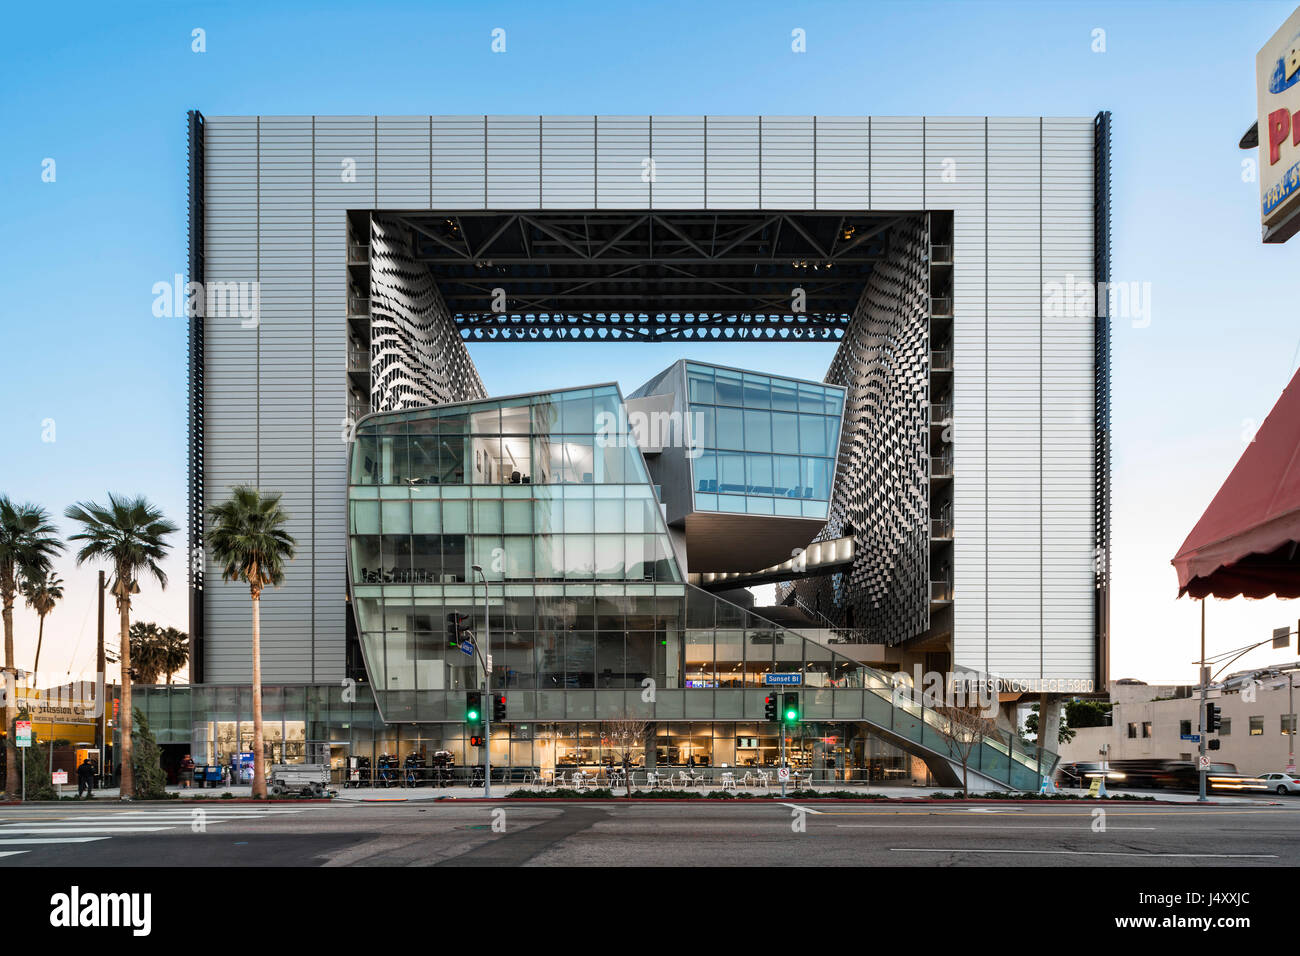 Emerson College Los Angeles >> Exterior View On Sunset Boulevard Emerson College Los Angeles Stock